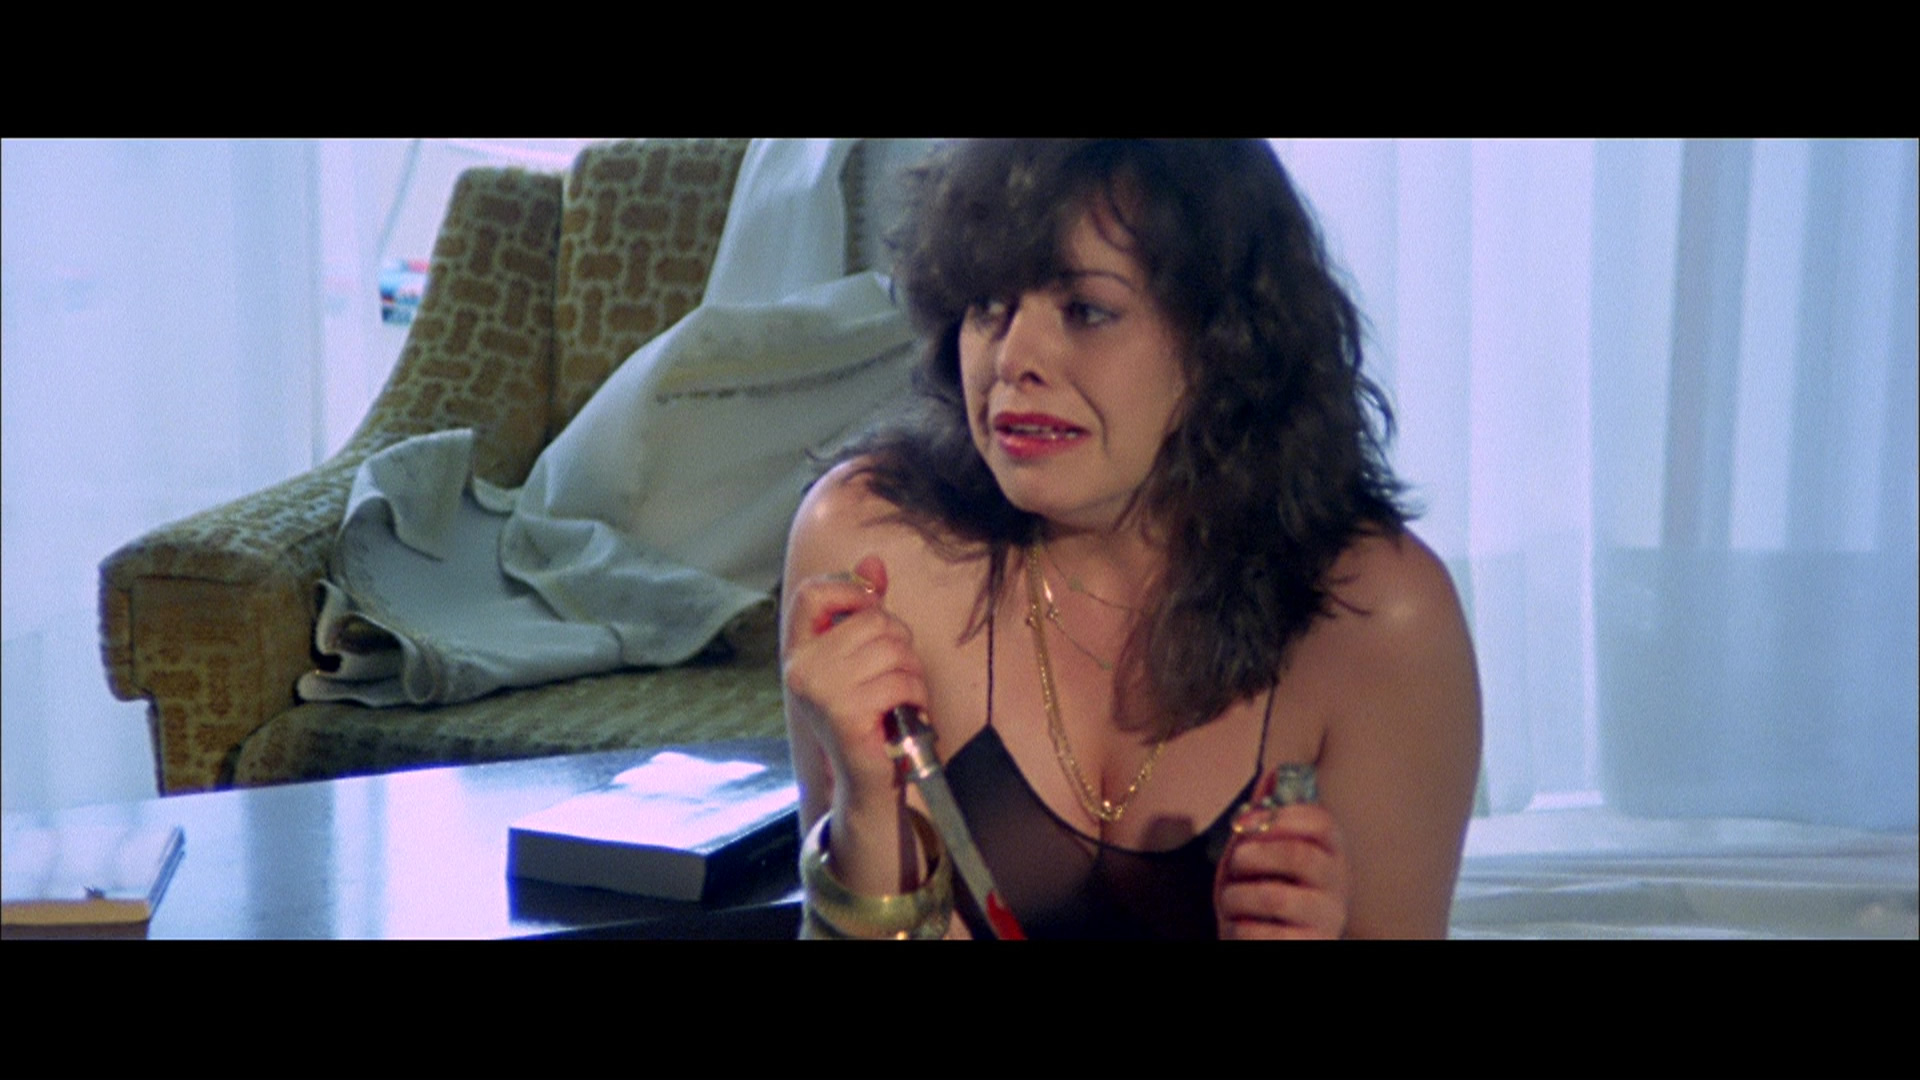 Butt Lina Romay nudes (45 foto) Leaked, Twitter, cameltoe